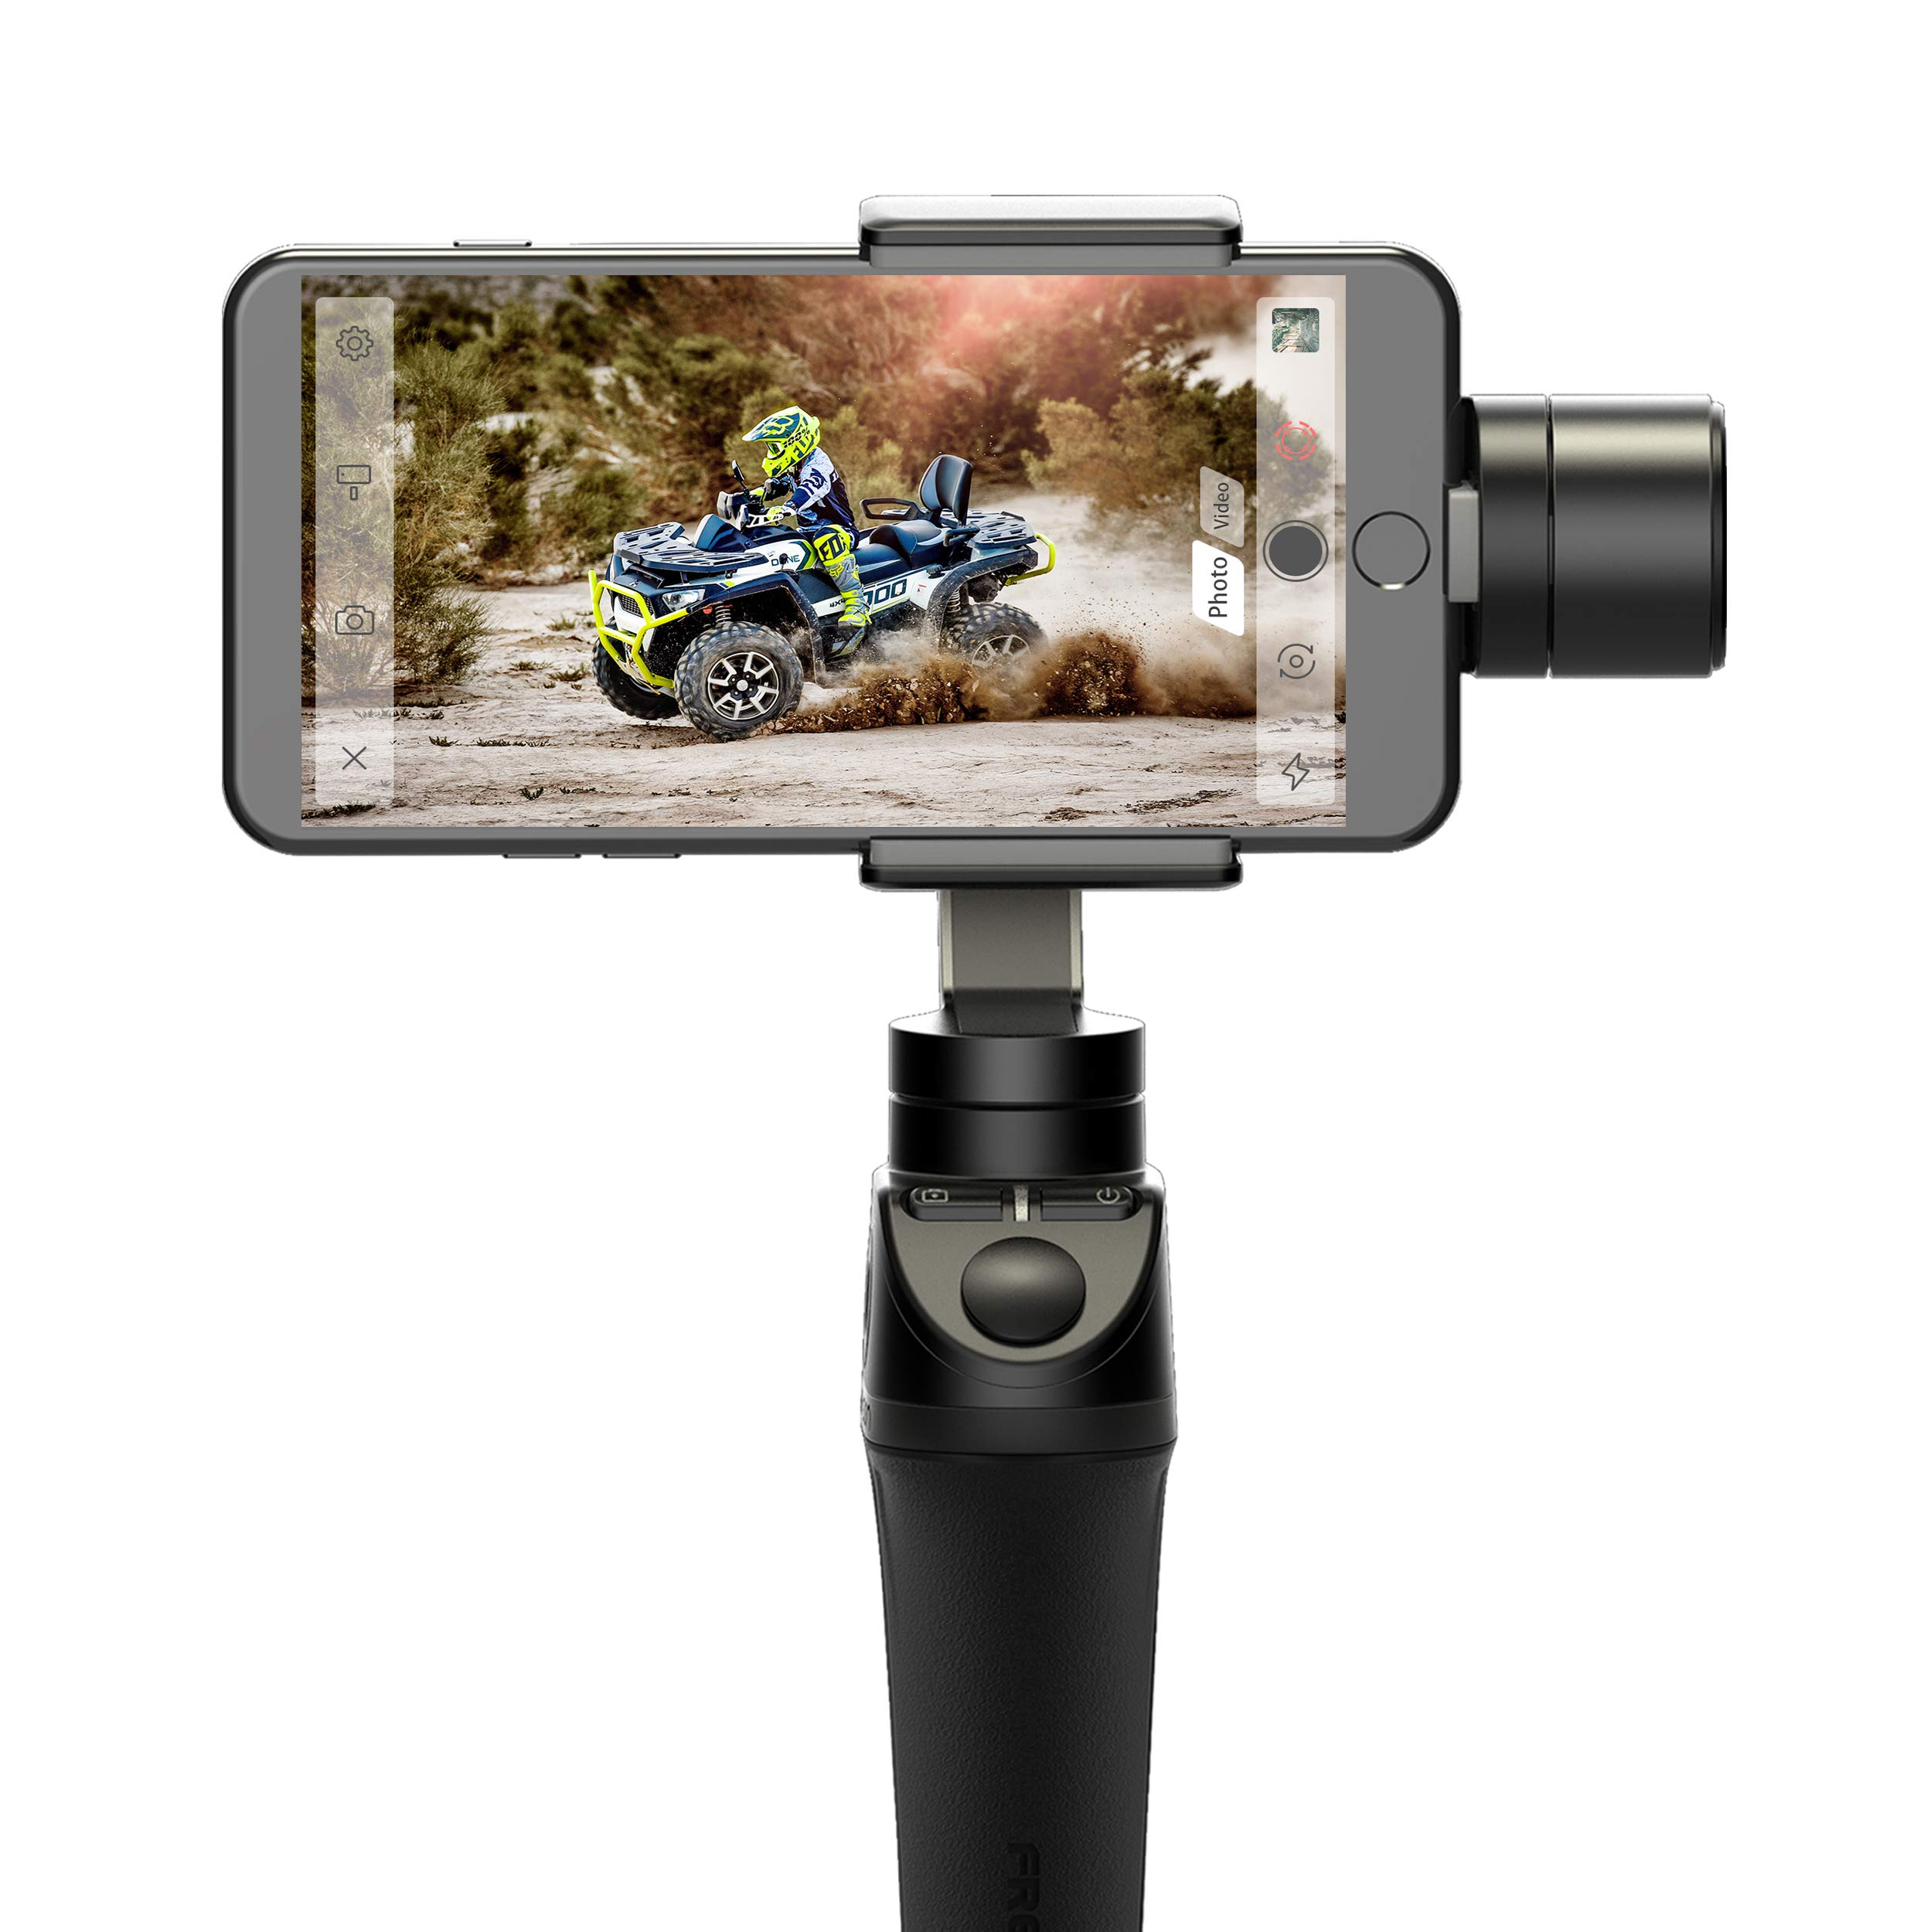 Freevision VILTA 3-Axis Handheld Stabilizer Gimbal for Smartphones (VILTA-M). Ergonomic Handgrip Design w/Rubberized Grip, Metal Solid Build. Infinite 360 Pan. Easy to Use FV Share APP